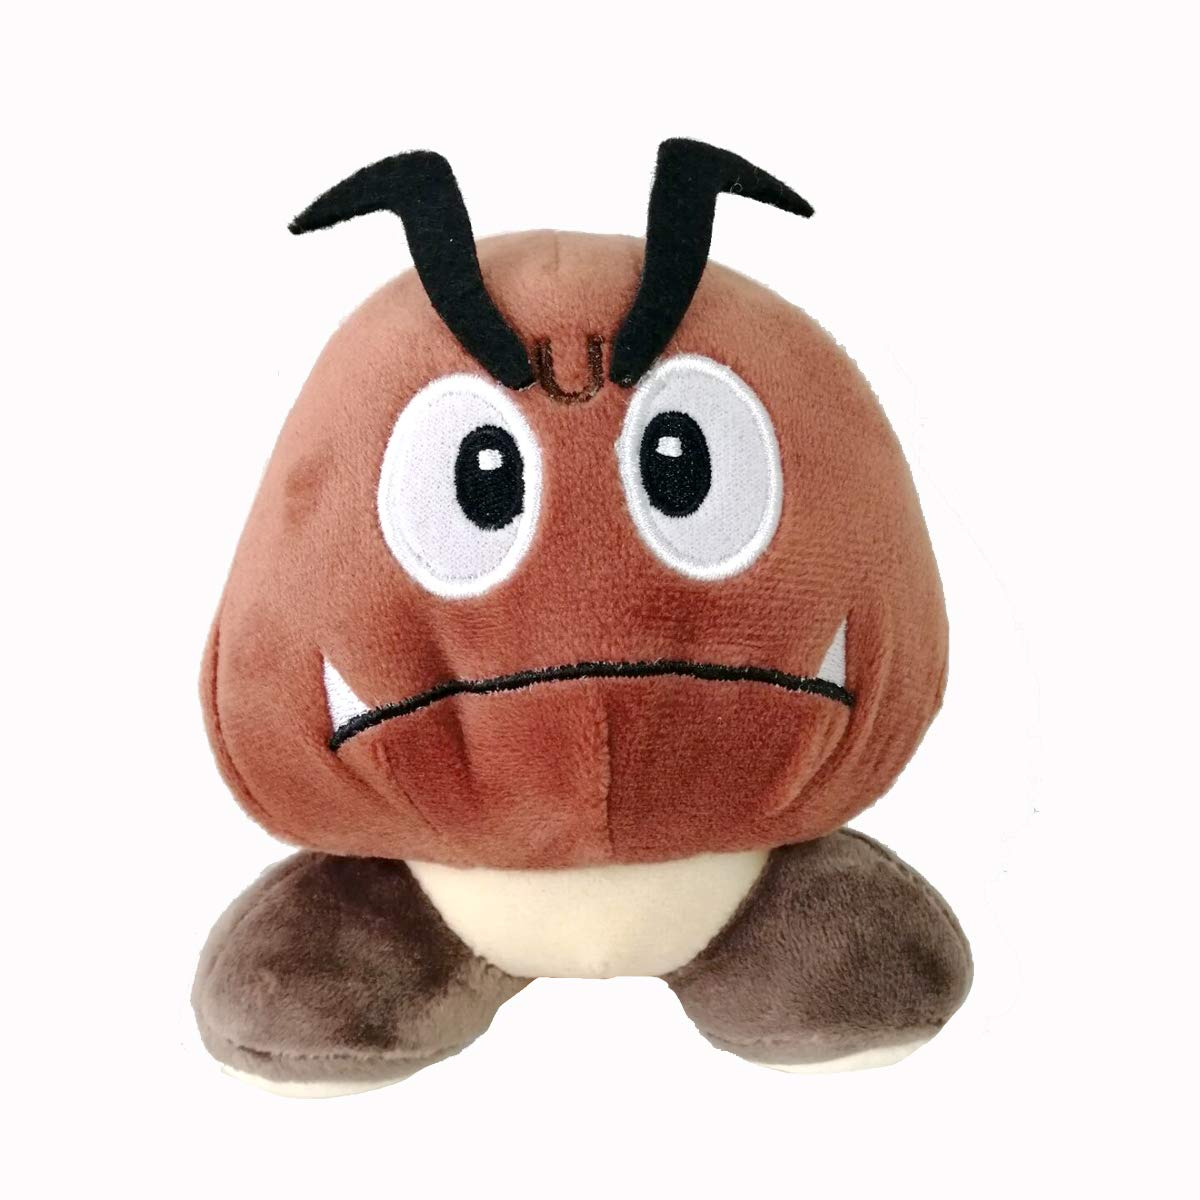 Brown Goomba Plush Stuffed Toy Animal Mushroom Doll Xmas Gift